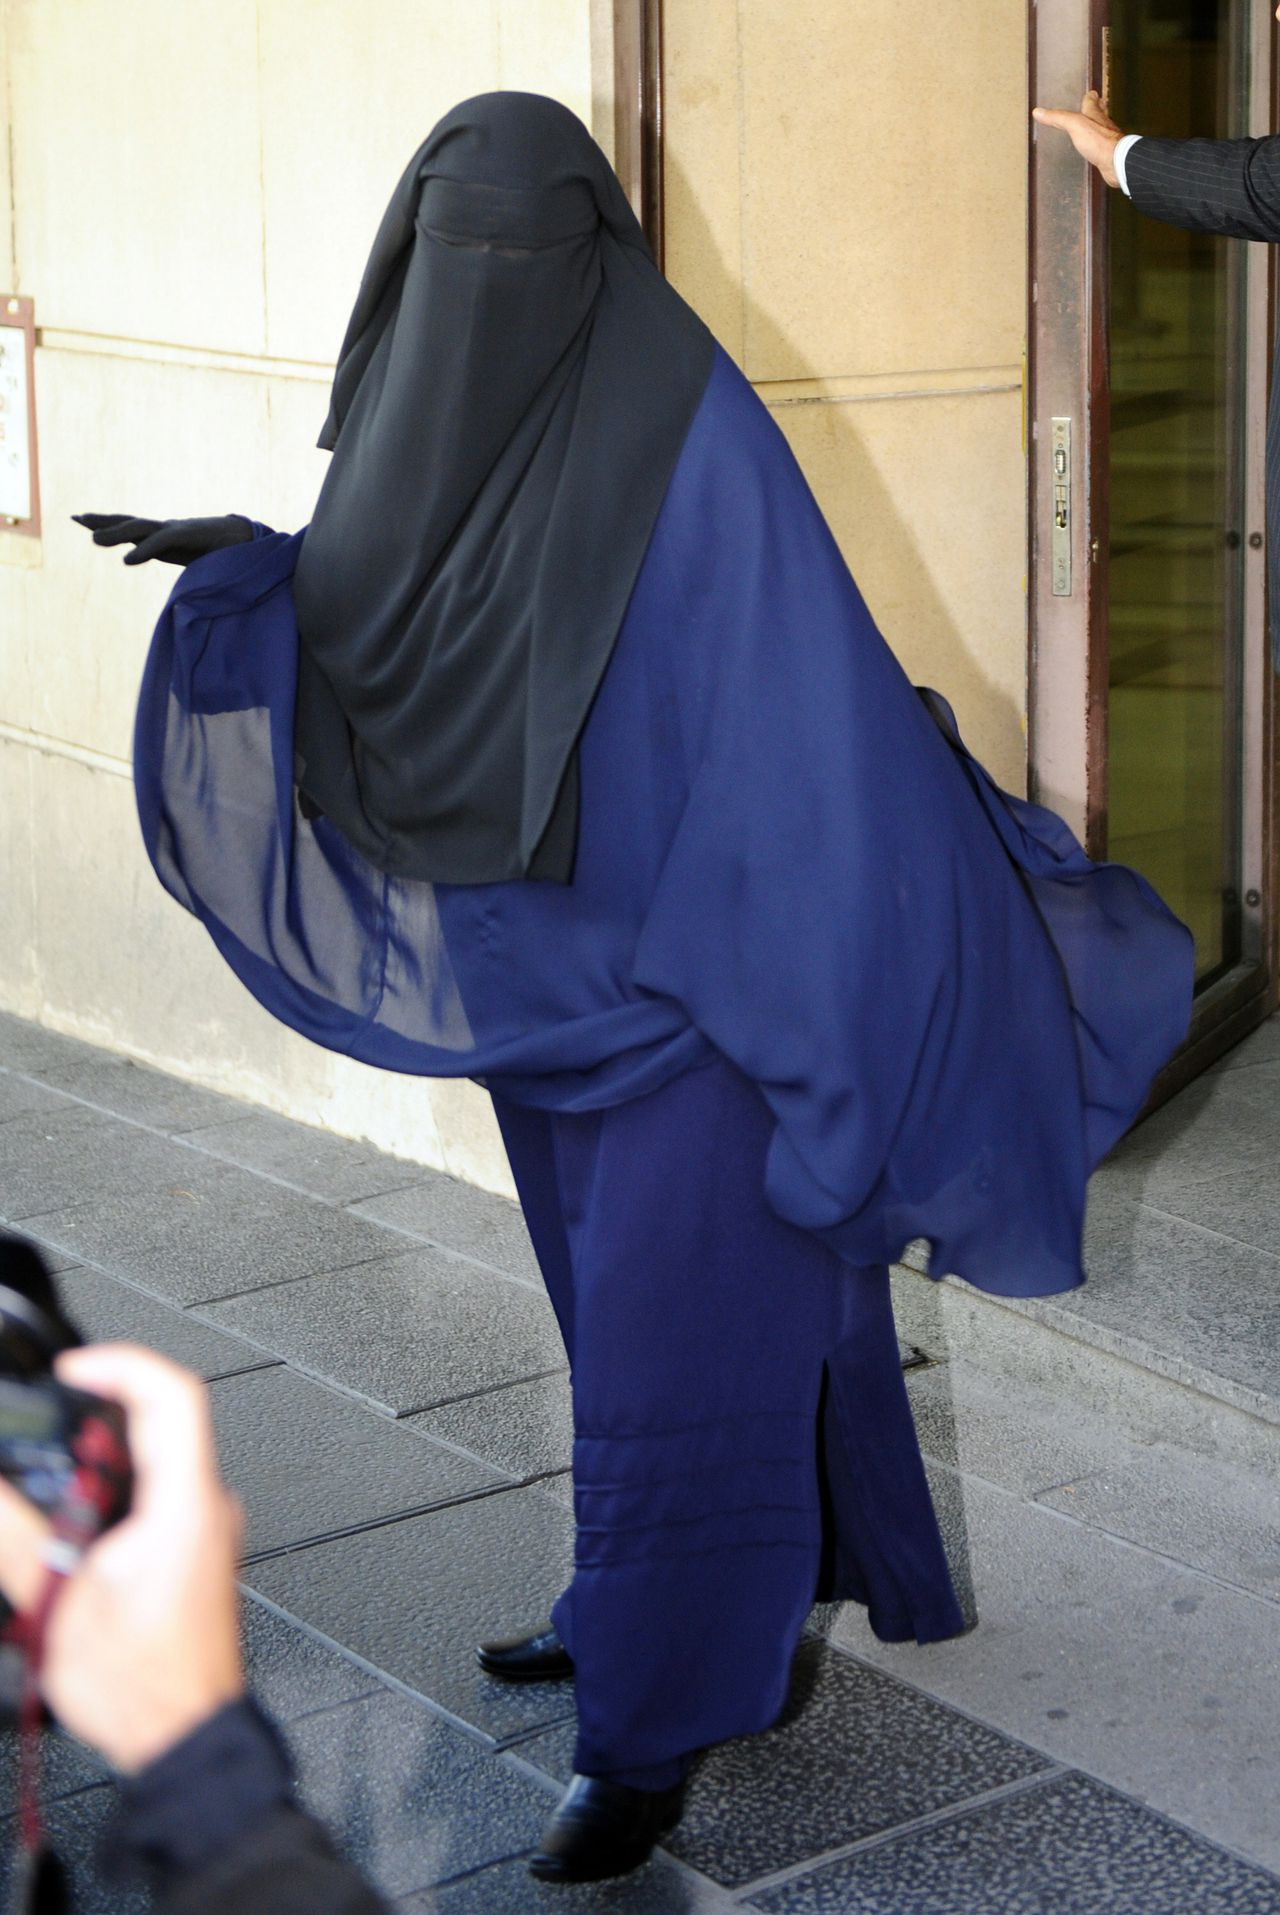 TO GO WITH AFP STORY BY PIERRE AUSSEILL(FILES) A file photo taken on September 28, 2009 shows Fatima Hssisni, a fully veiled Muslim woman, leaving the high court after testifying in a trial against a radical Islamic cell in Madrid. Hssisni, who was expelled from court after refusing to testify bareface as the Spanish law dictates, was able to testify lifting her veil toward the judge but back to the public. After France and Belgium, the debate on banning the full Islamic veil is reaching Spain, where local bans are becoming more frequent. The Catalonian Regional Parliament should decide on June 30, 2010 whether to ban the full Islamic veil (burqa or niqab) in public places AFP PHOTO / DOMINIQUE FAGET